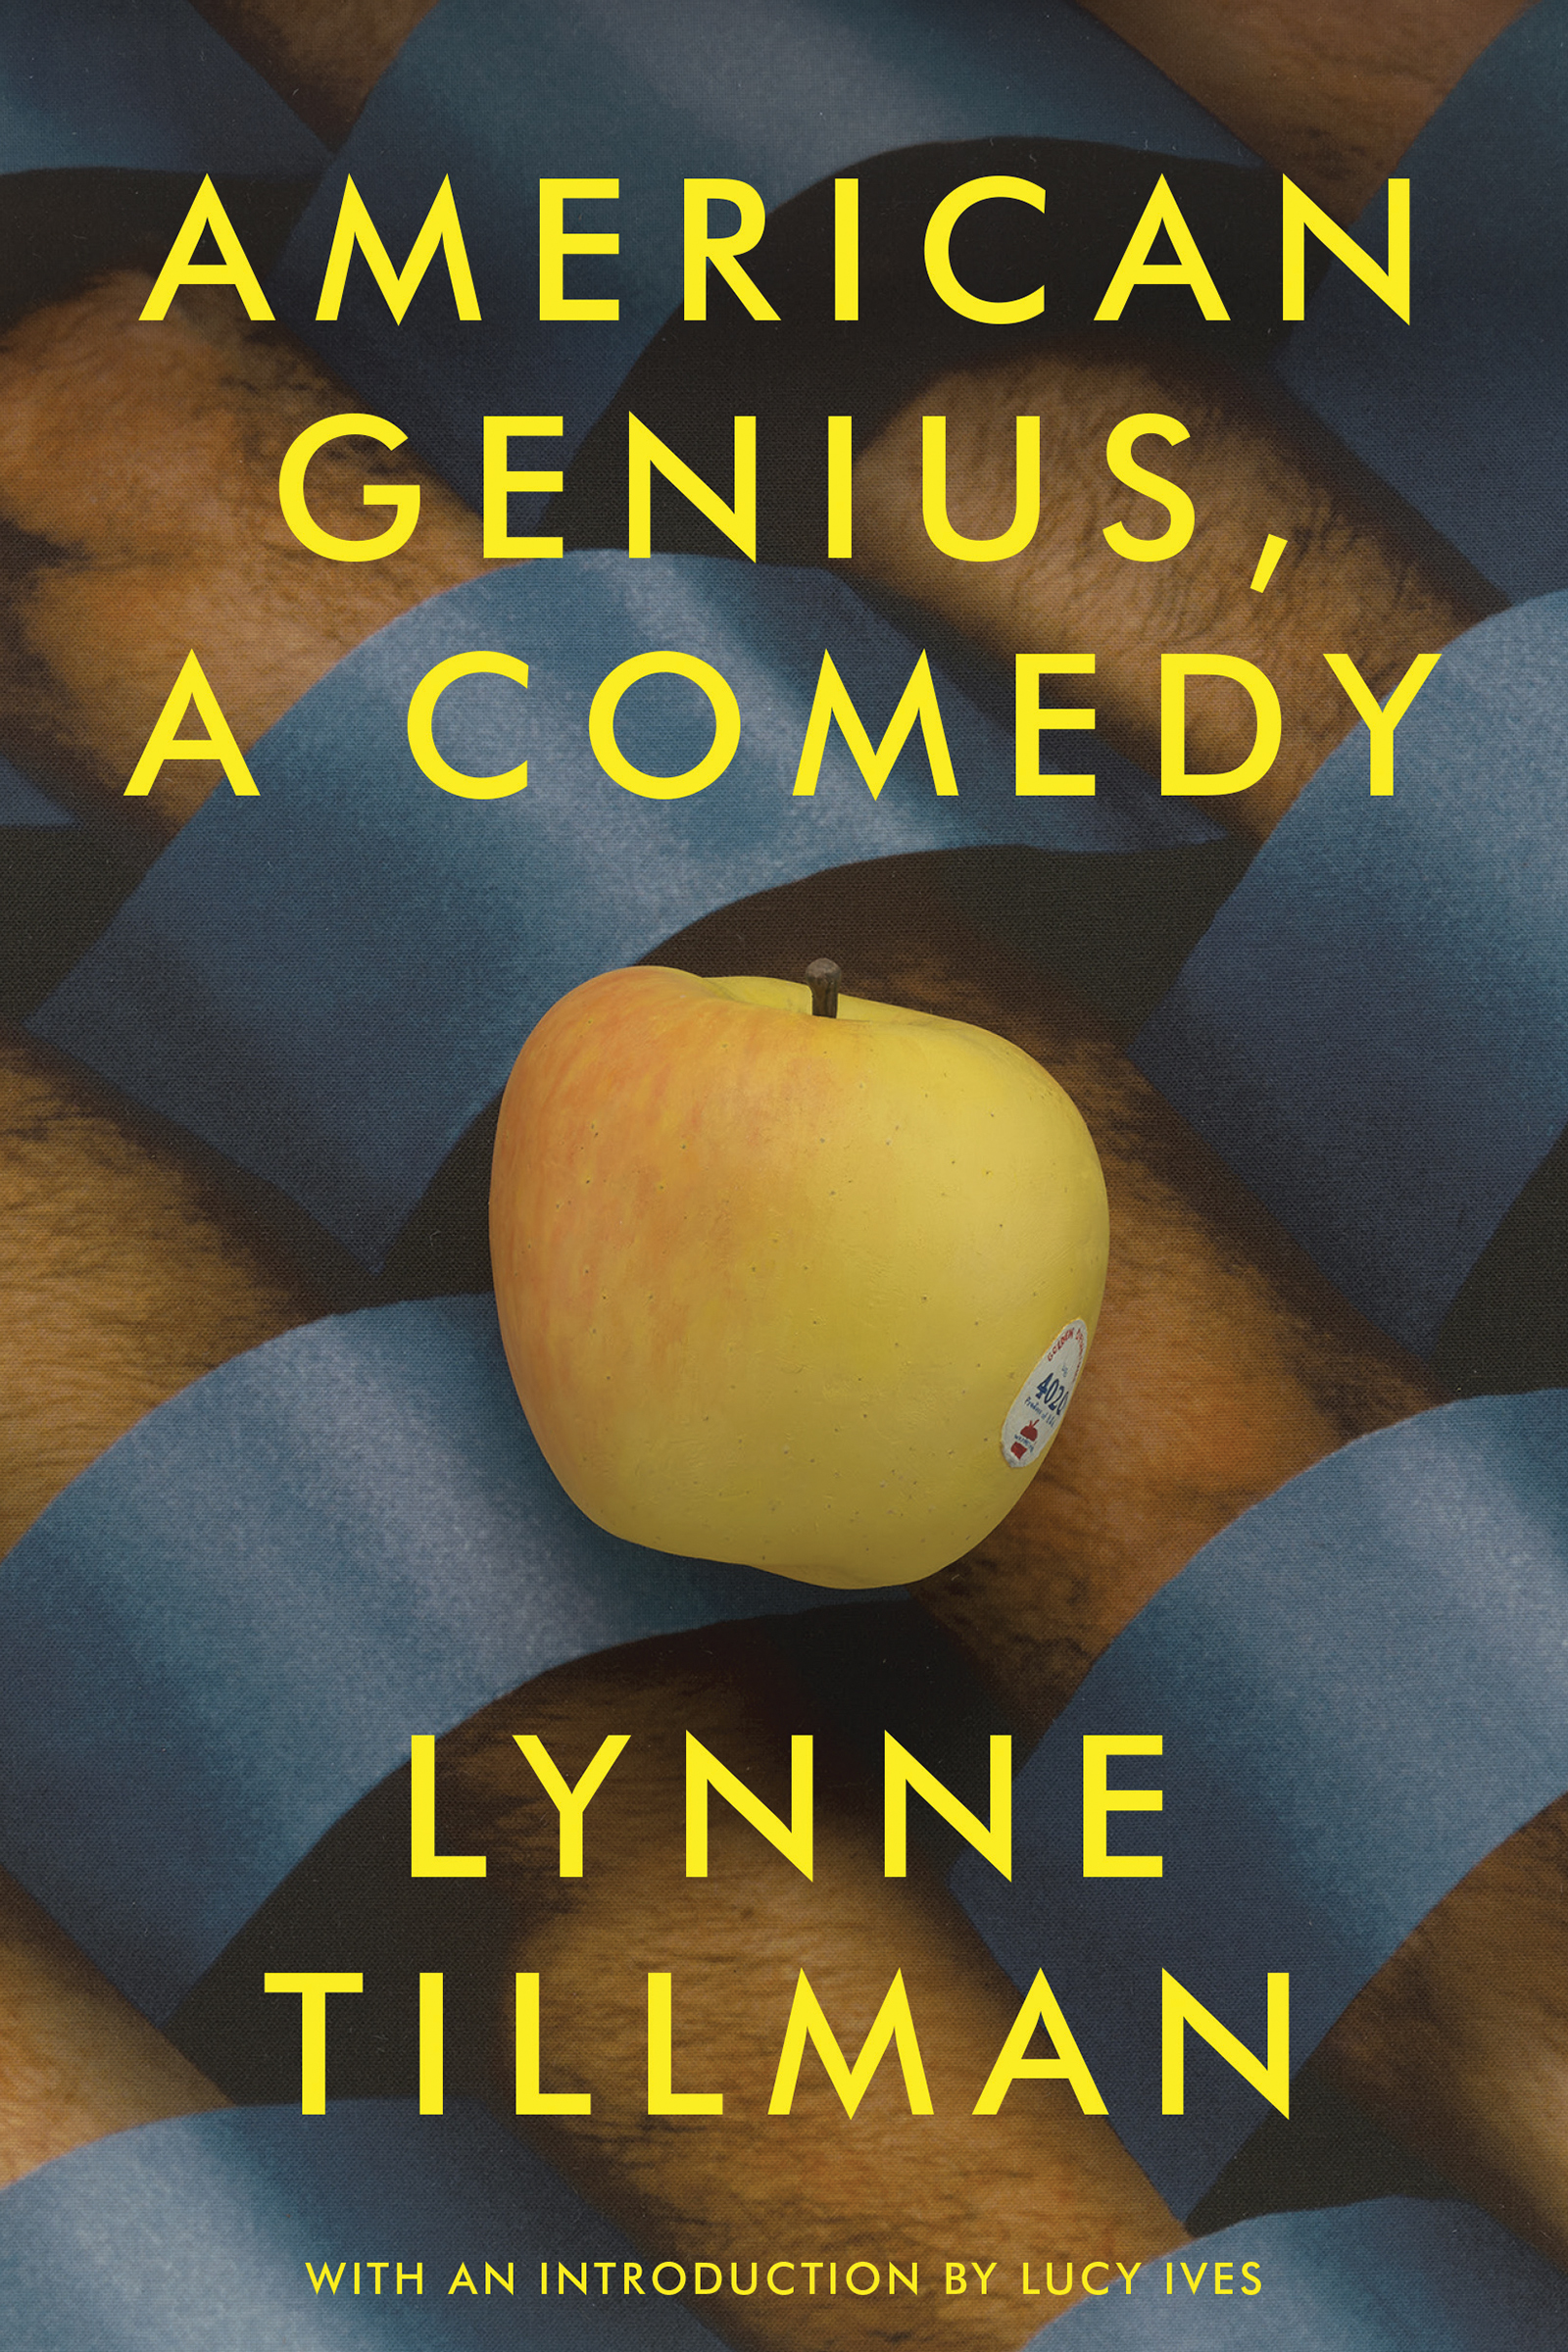 Cleveland Review of Books reviews the new edition of American Genius